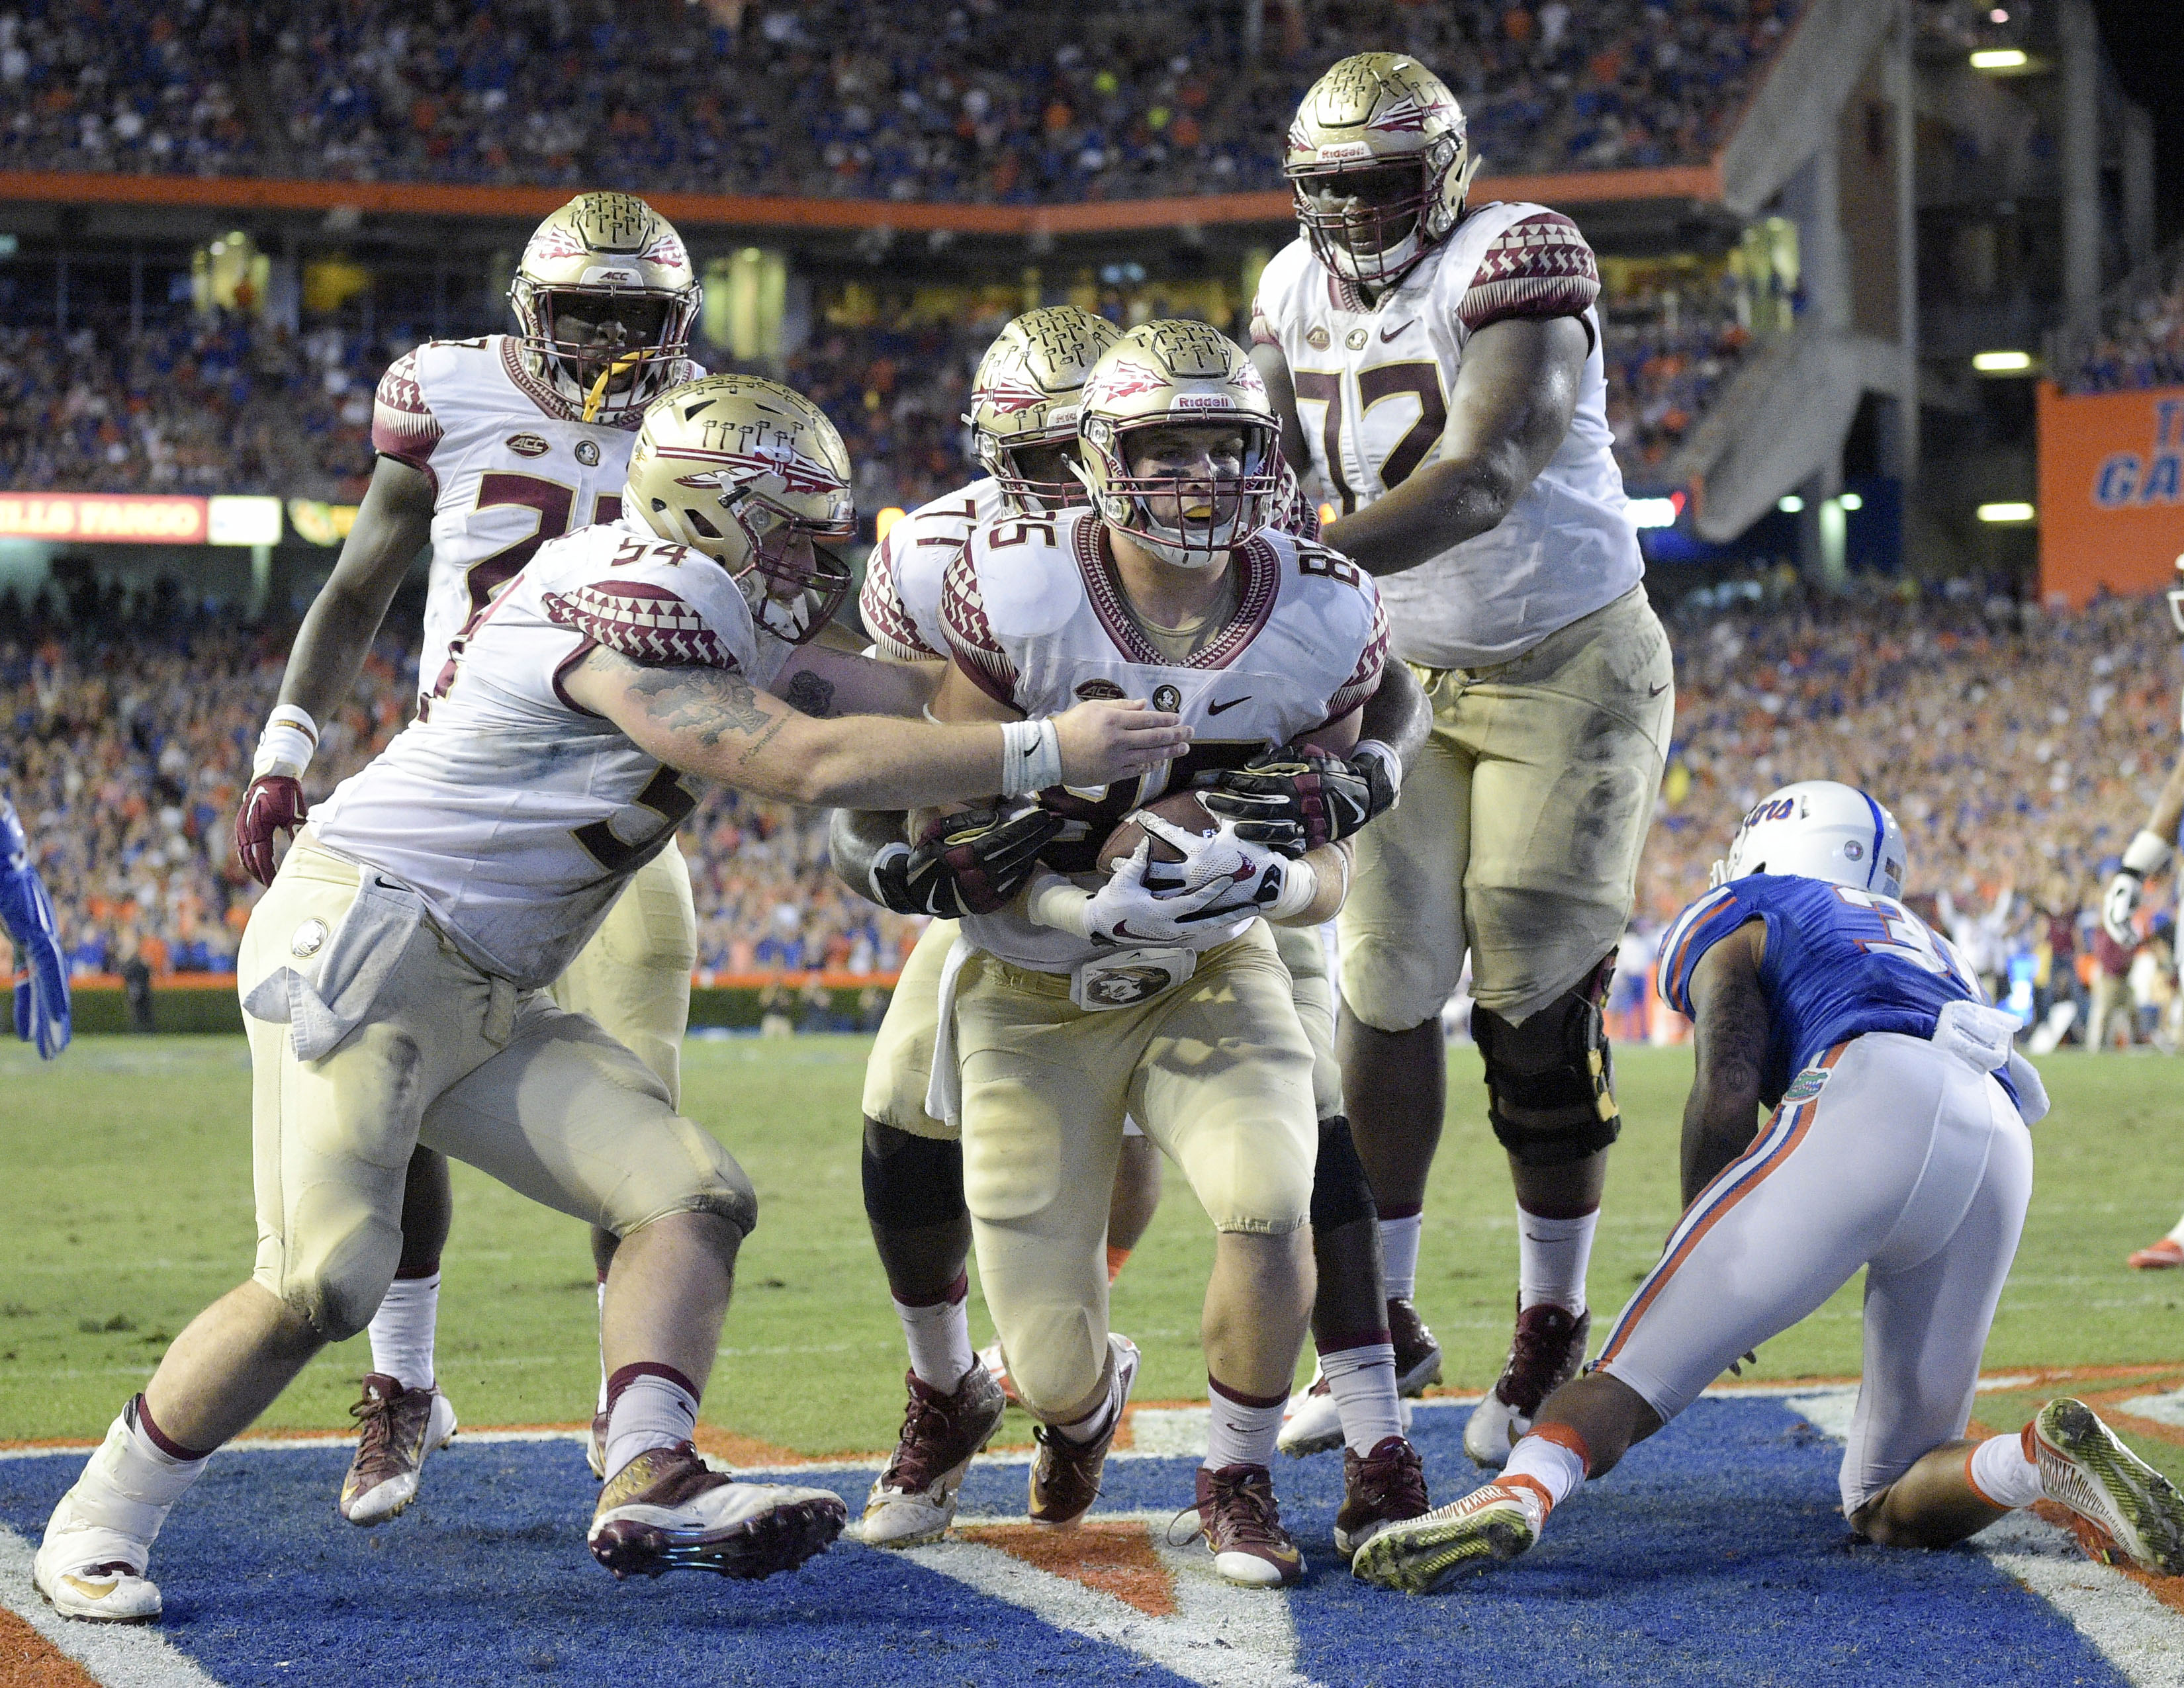 Florida State tight end Jeremy Kerr, center, celebrates with teammates after scoring a touchdown against Florida on a 1-yard pass play during the first half of an NCAA college football game, Saturday, Nov. 28, 2015, in Gainesville, Fla. (AP Photo/Phelan M